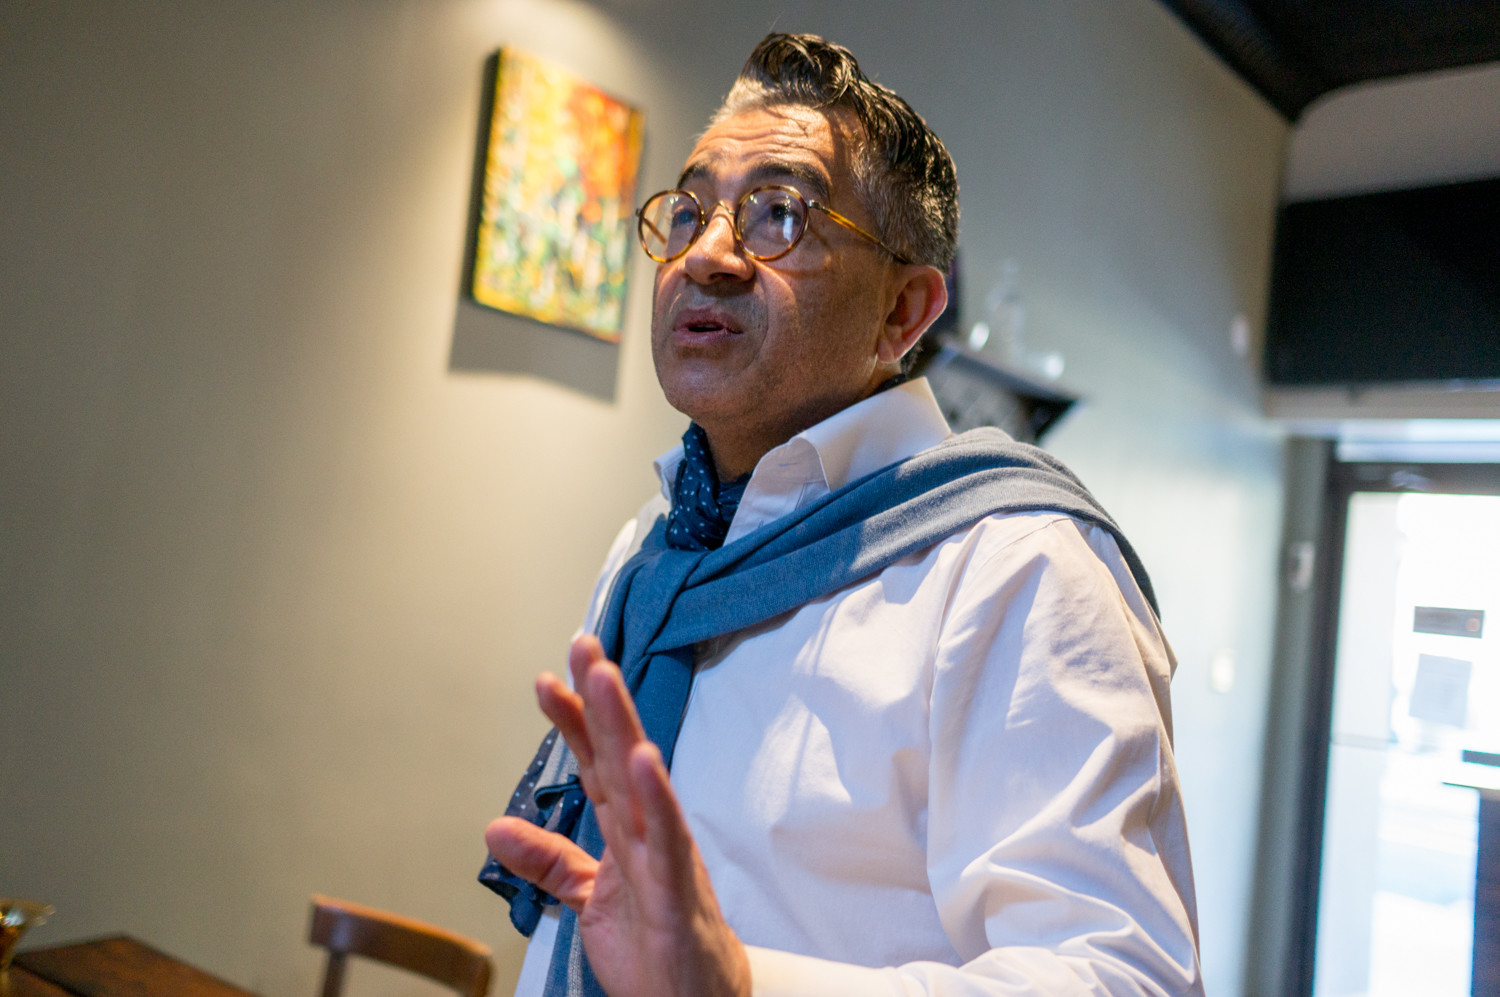 Nando Ghorchian talks about the challenges of running multiple restaurants in the new location for Caffe Buon Gusto.